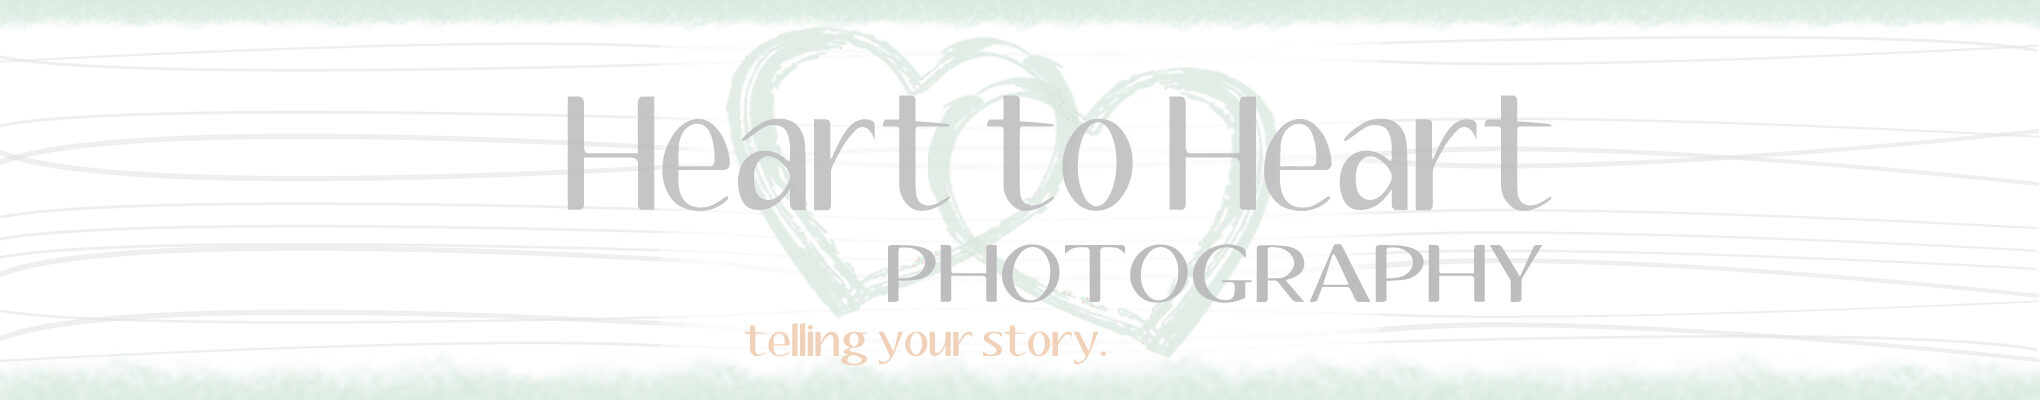 Heart to Heart Photography